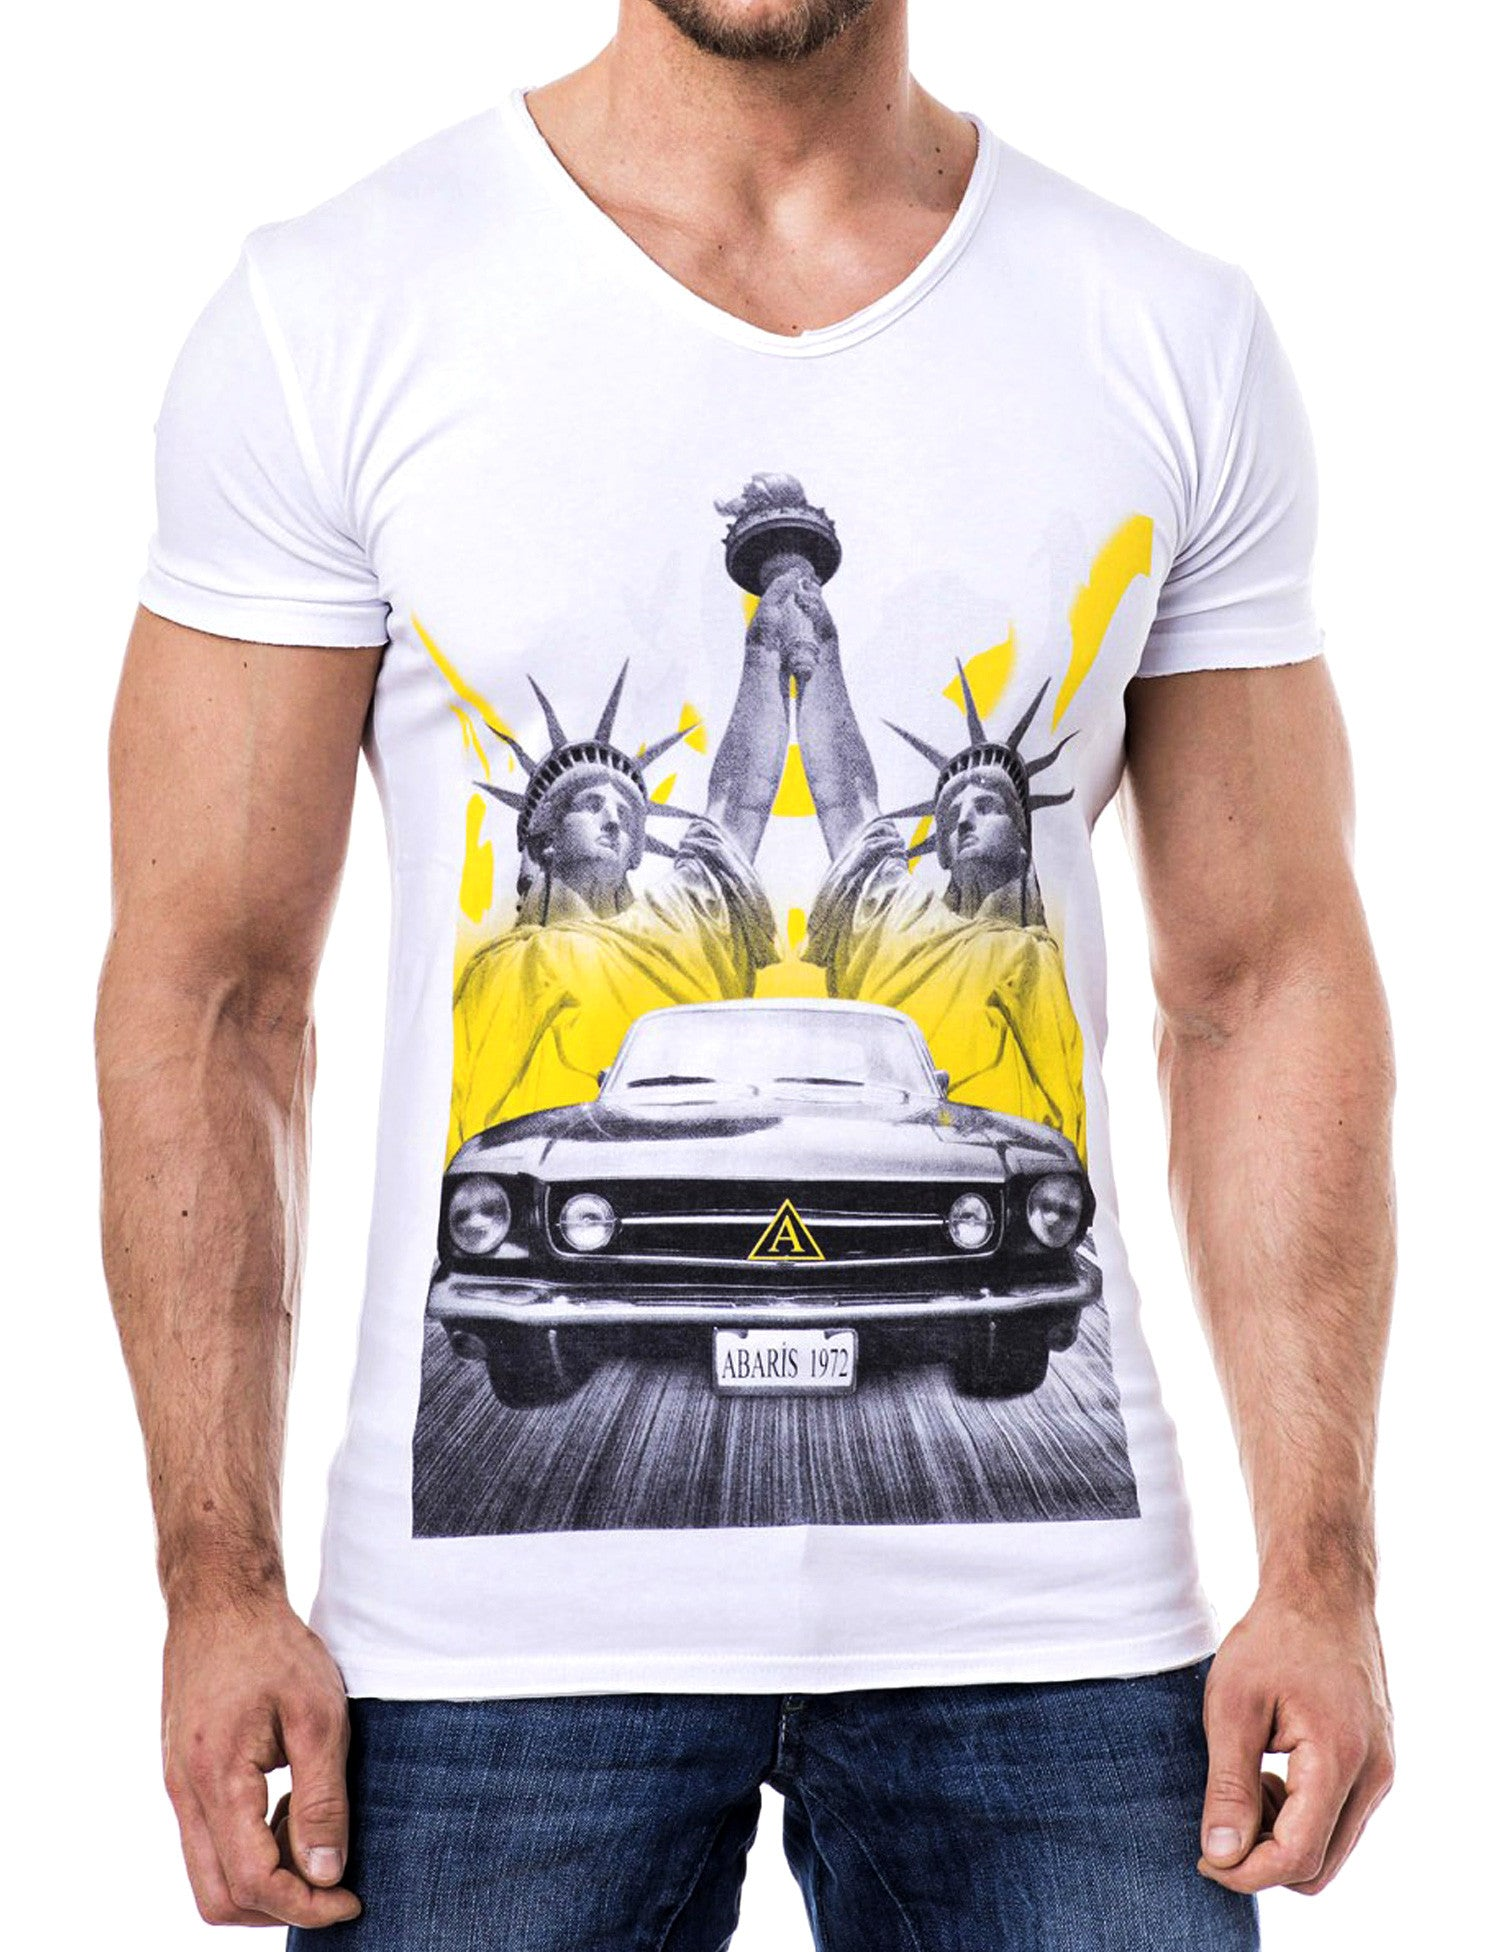 Double Up Liberty V-Neck T-Shirt White